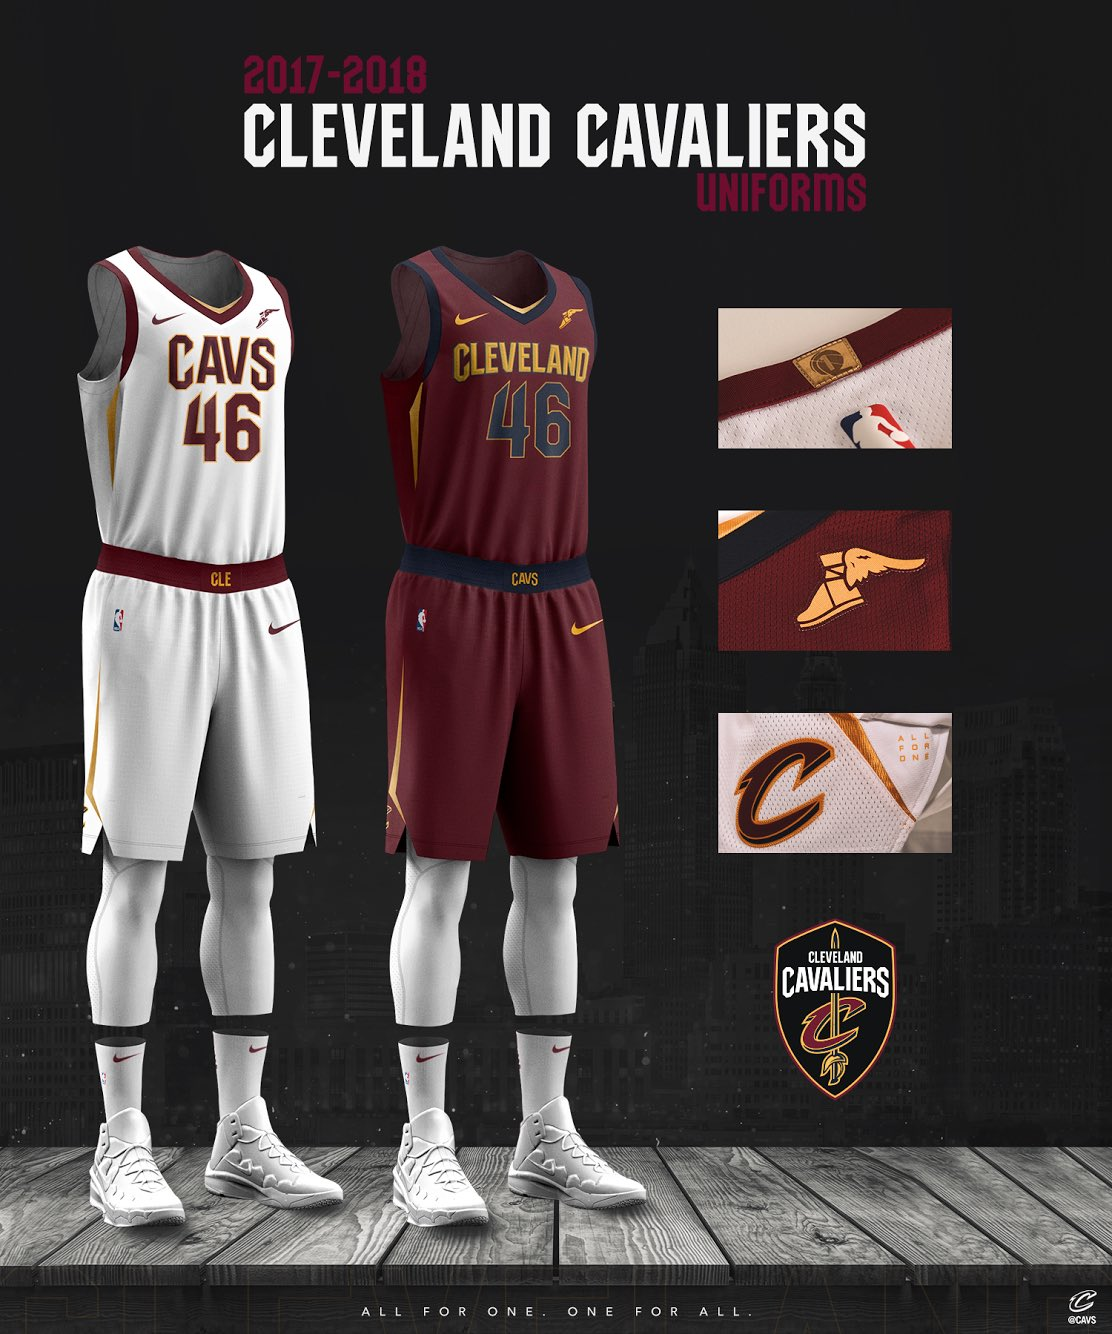 0819f26f5 Cleveland Cavaliers and Nike Showcase New Design for 2017 18 NBA Uniforms  August 08